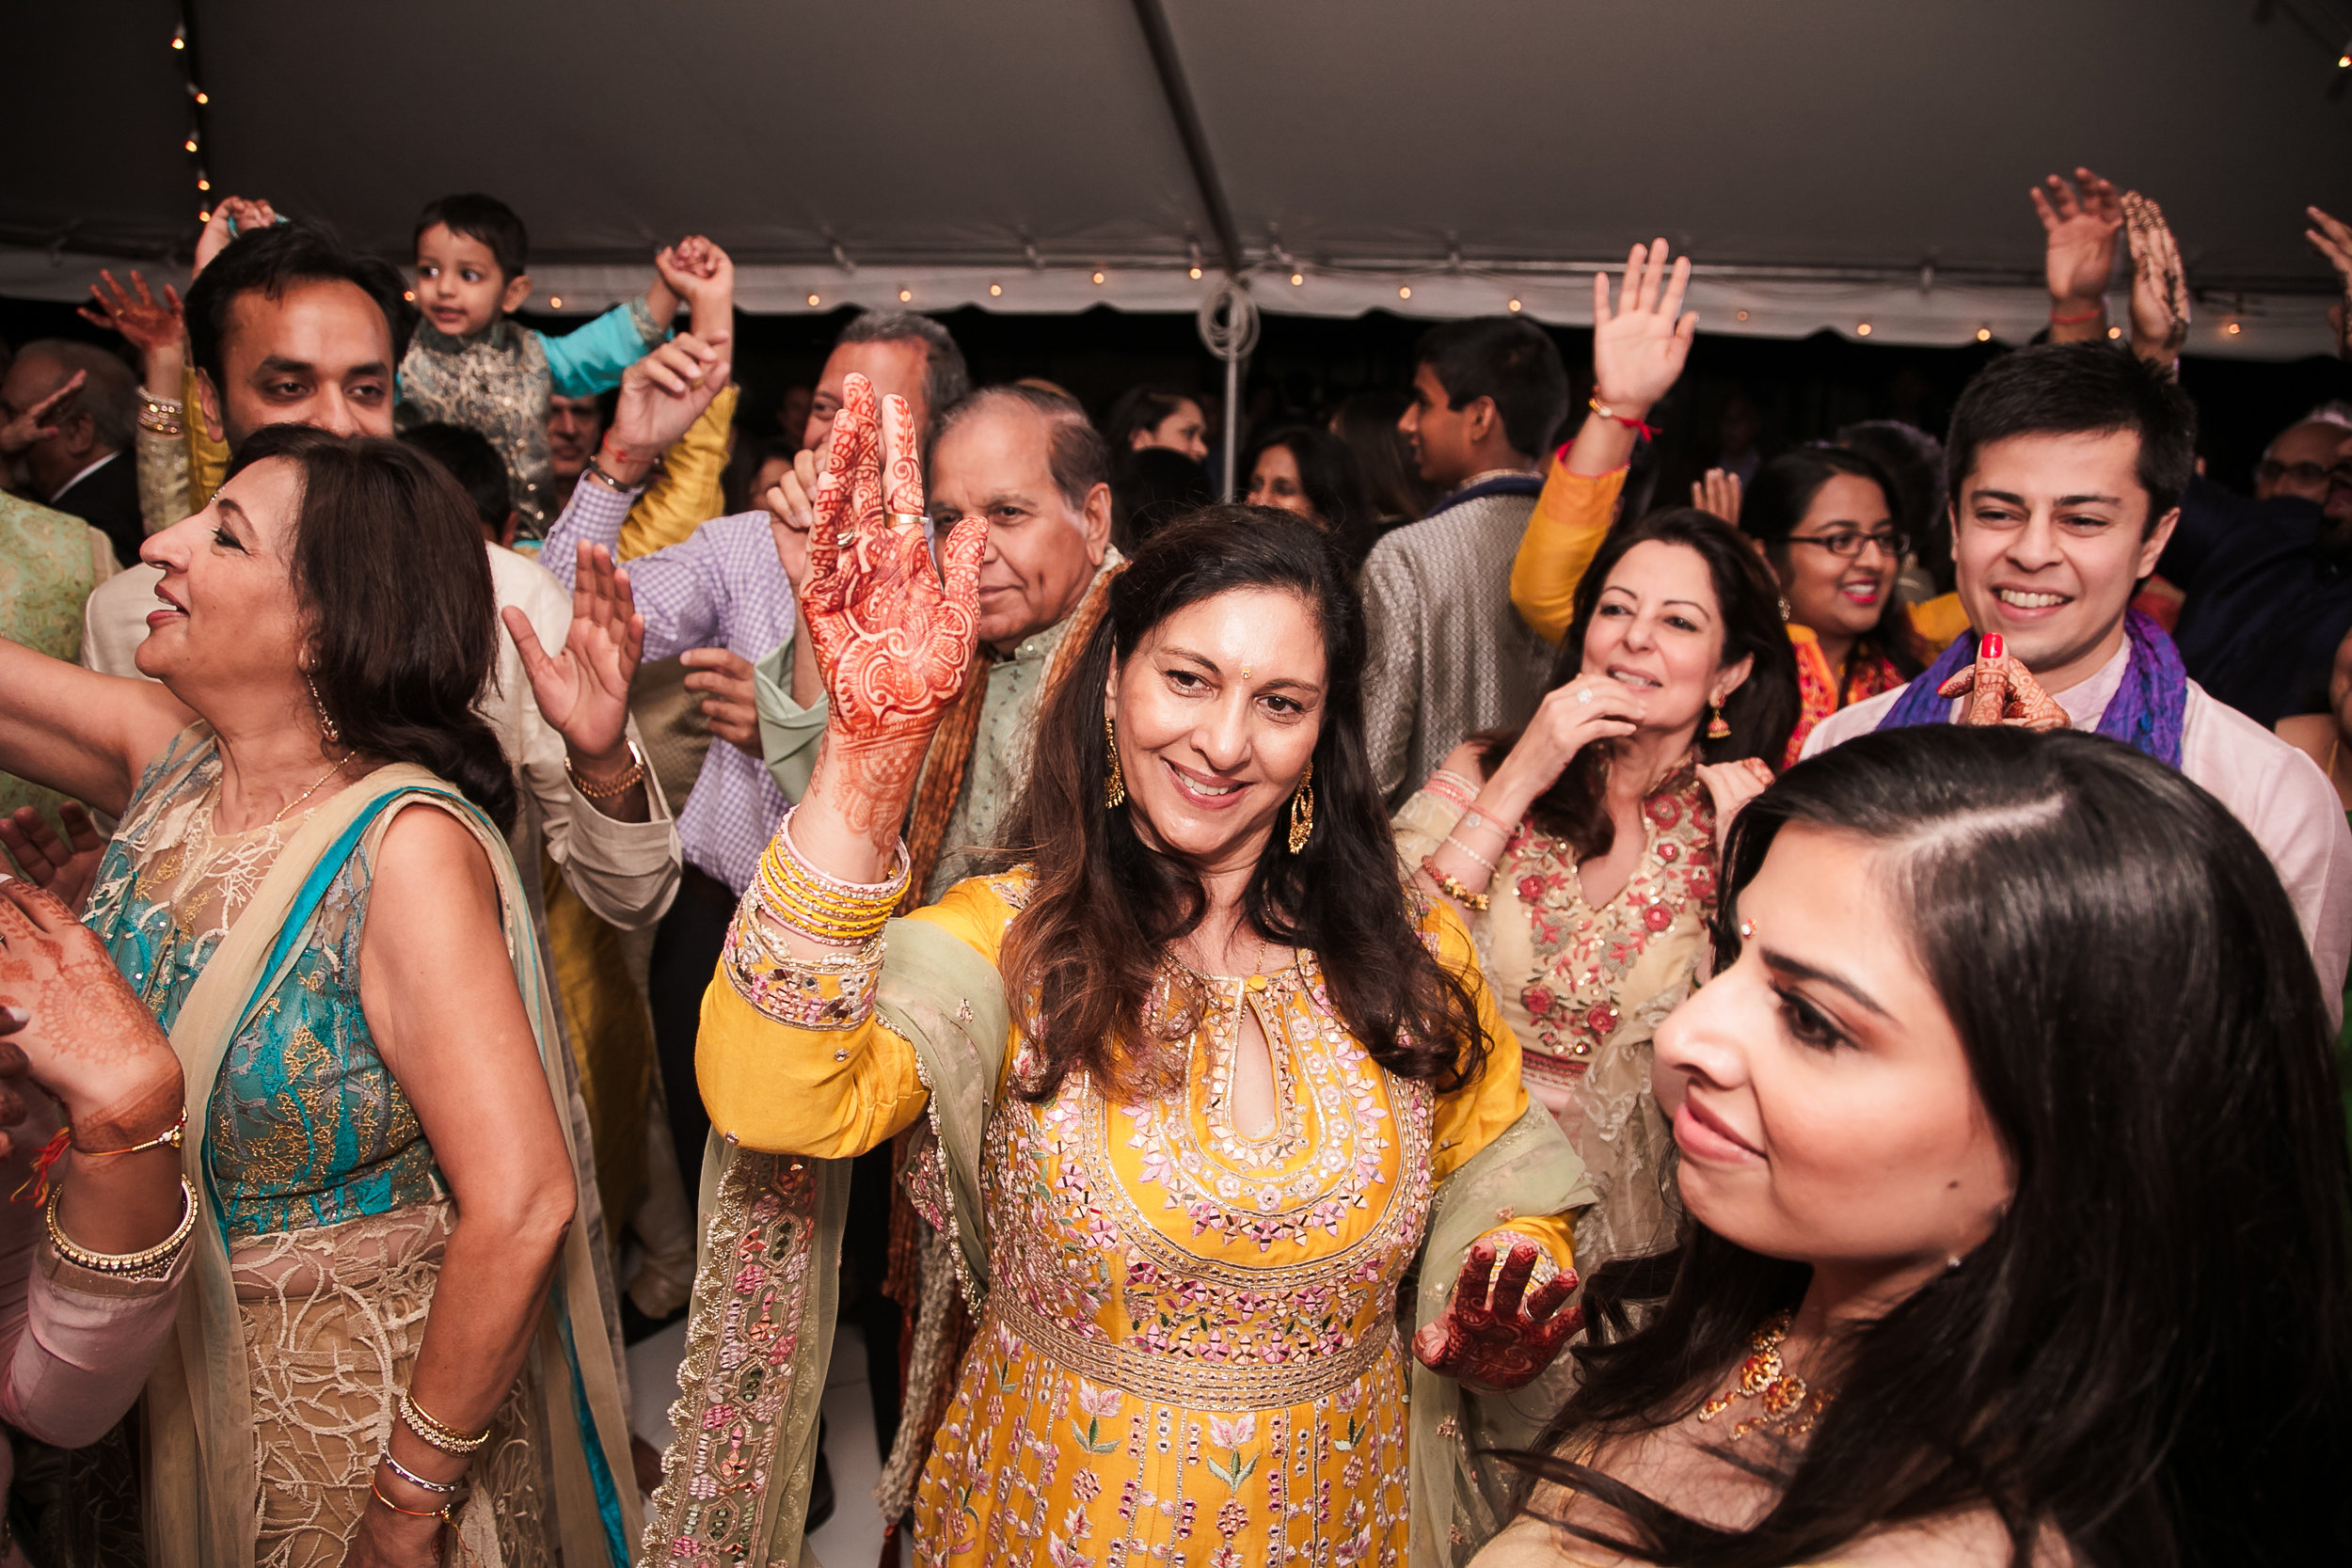 INDIAN WEDDING MOM DANCING.jpg